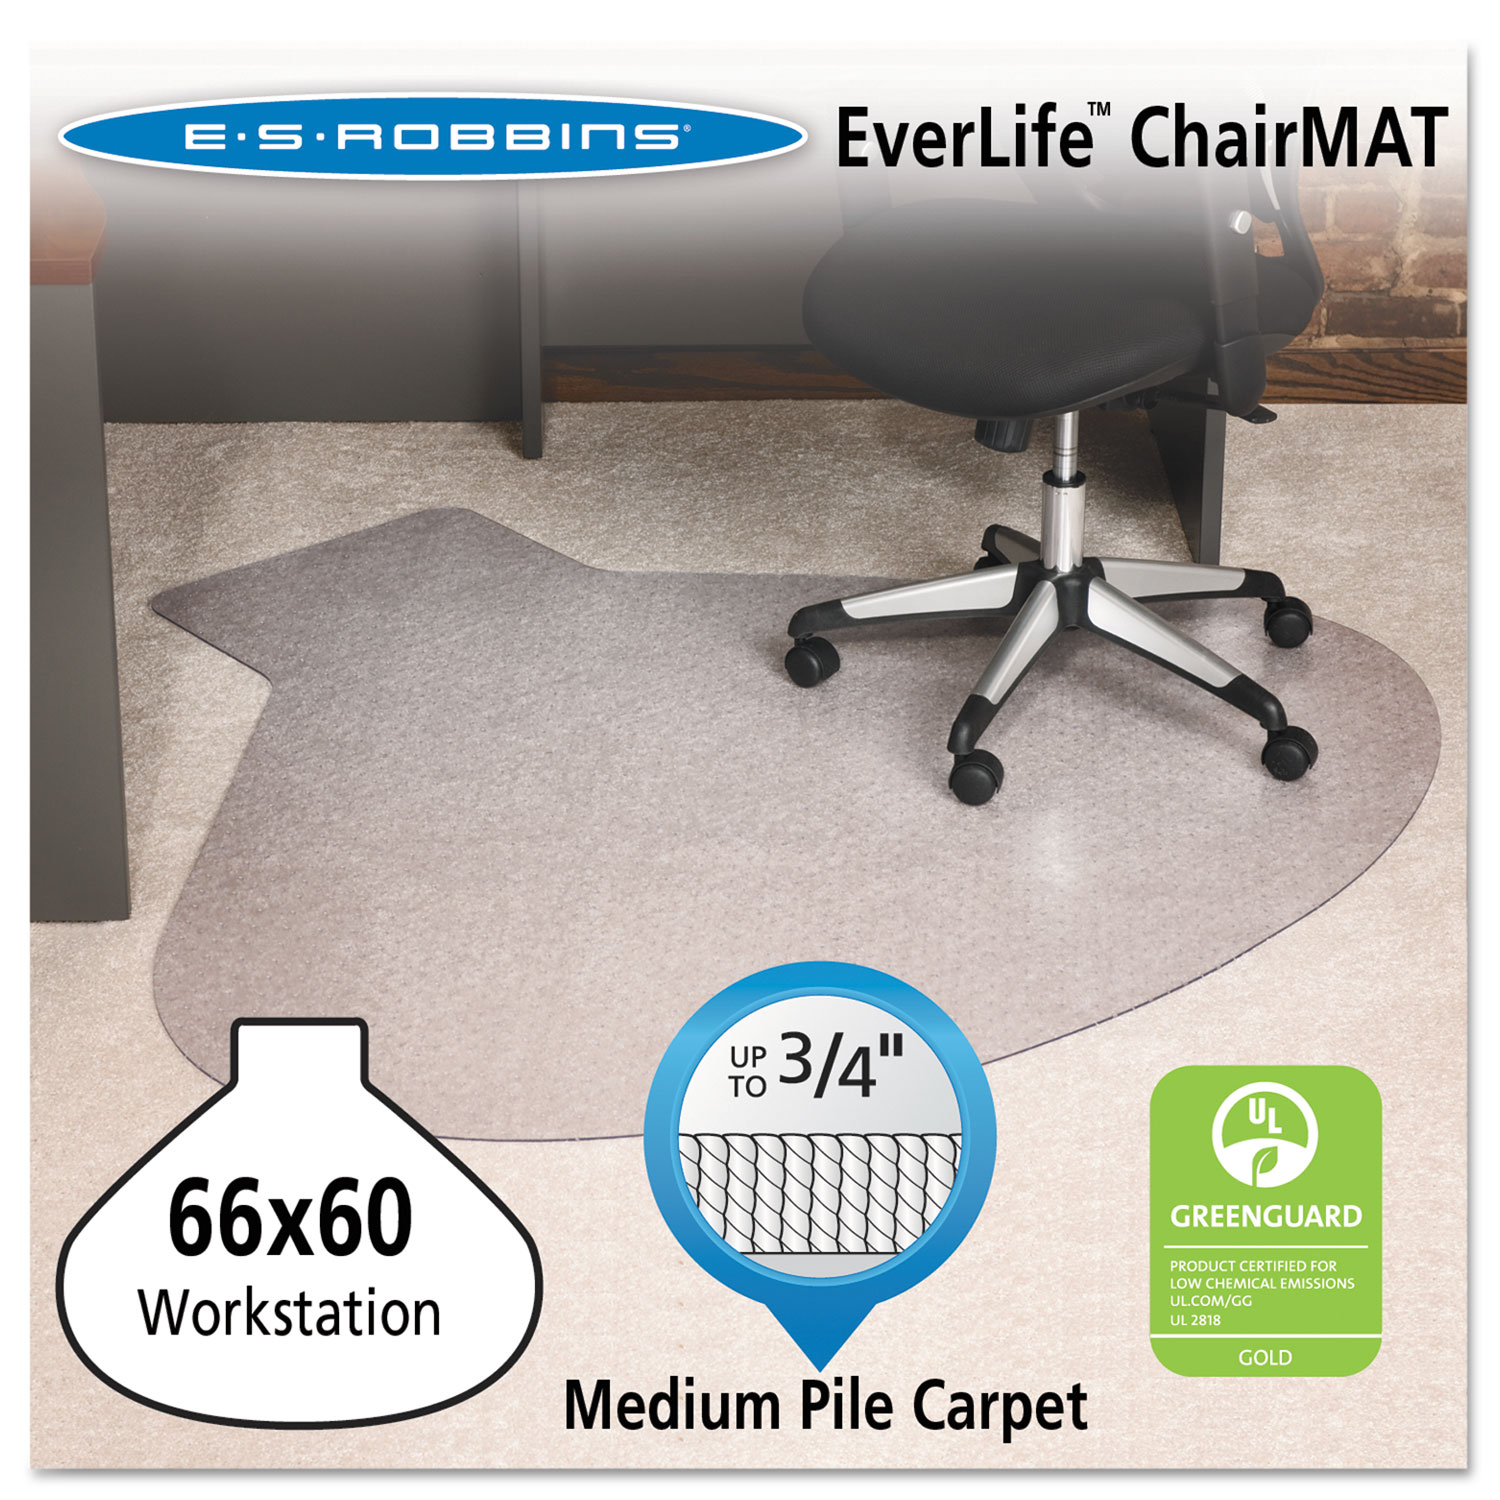 EverLife Chair Mats For Medium Pile Carpet By ES Robbins - Office chair mat